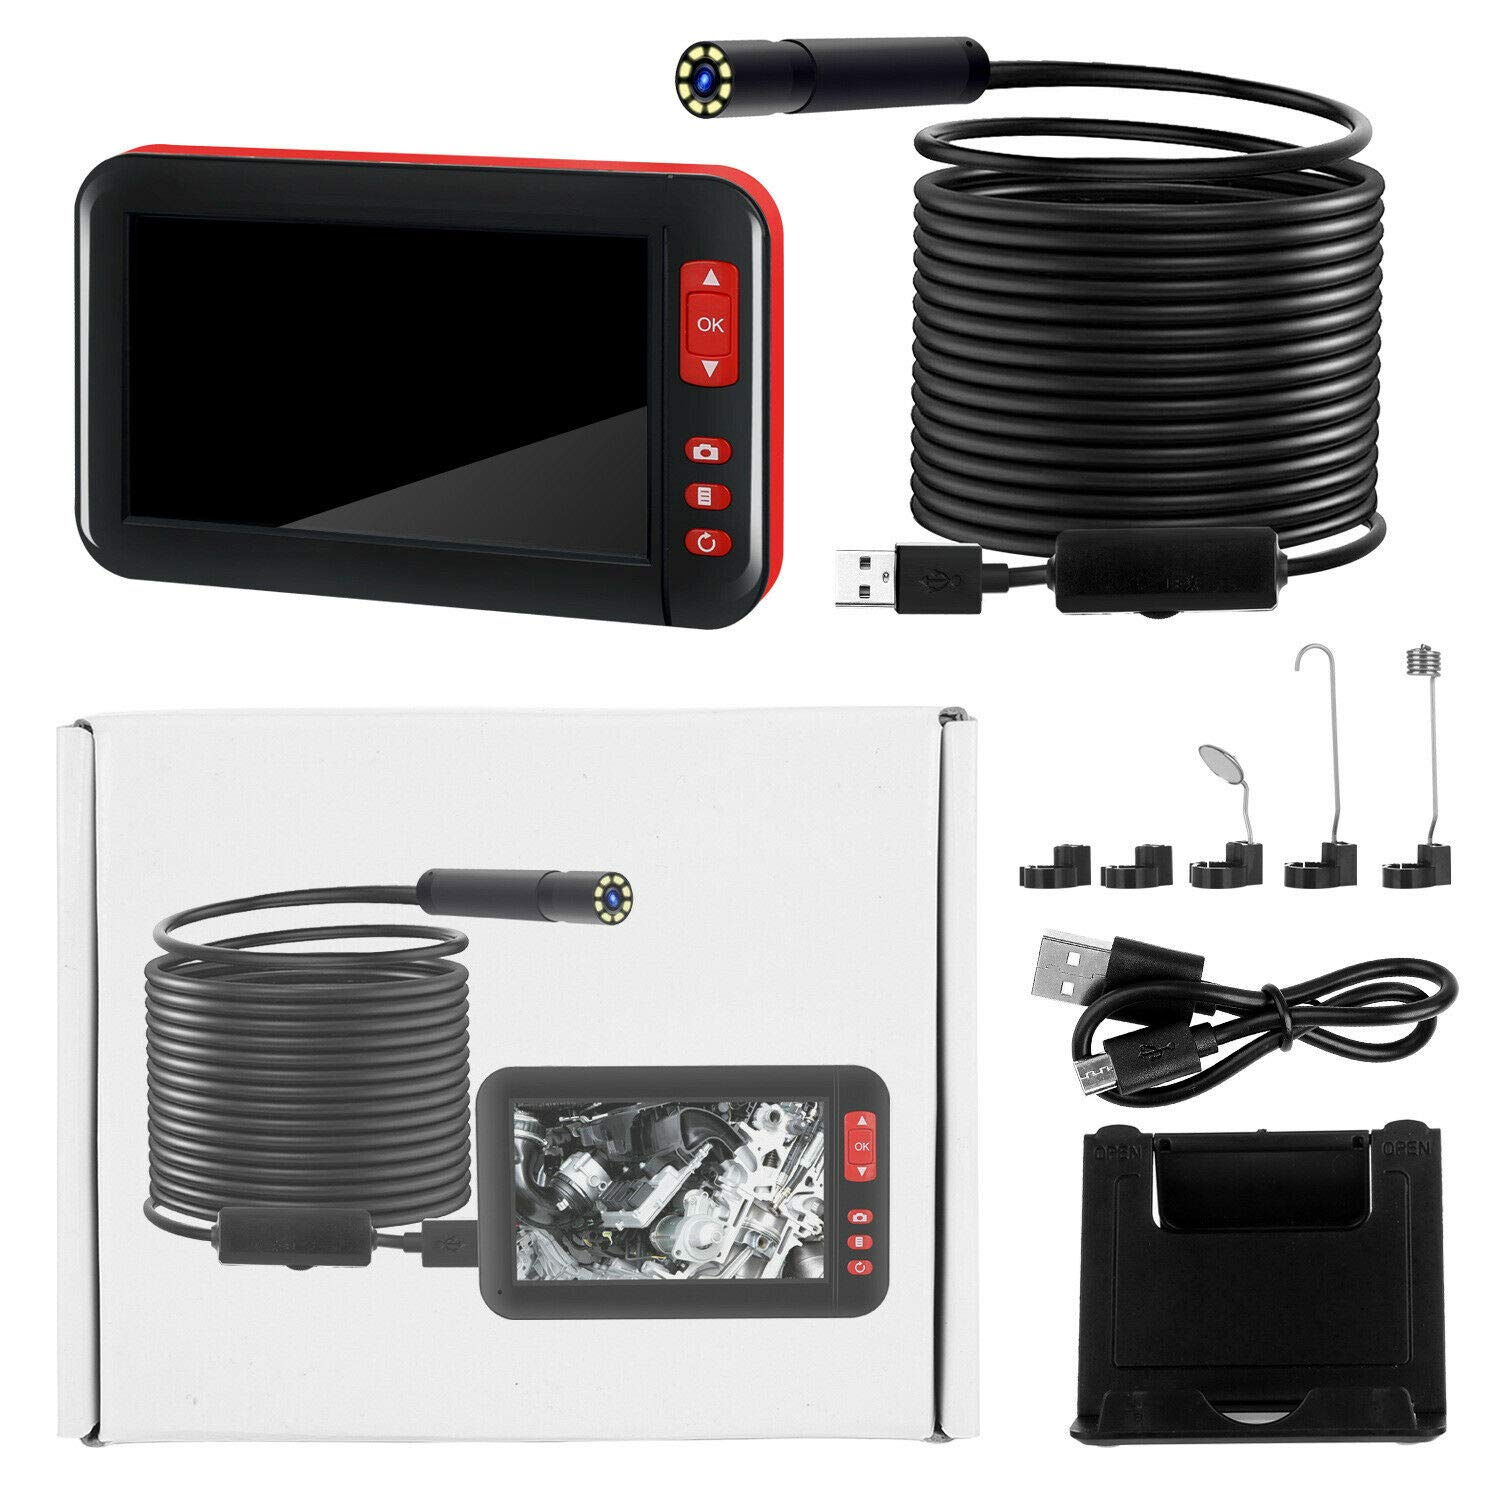 5M SUNWAN USB Rechargable Endoscope 1080P HD Inspection Cameras with 8Leds Probe Industial Borescope 8mm Tube 4.3 LCD Screen F200 Waterproof